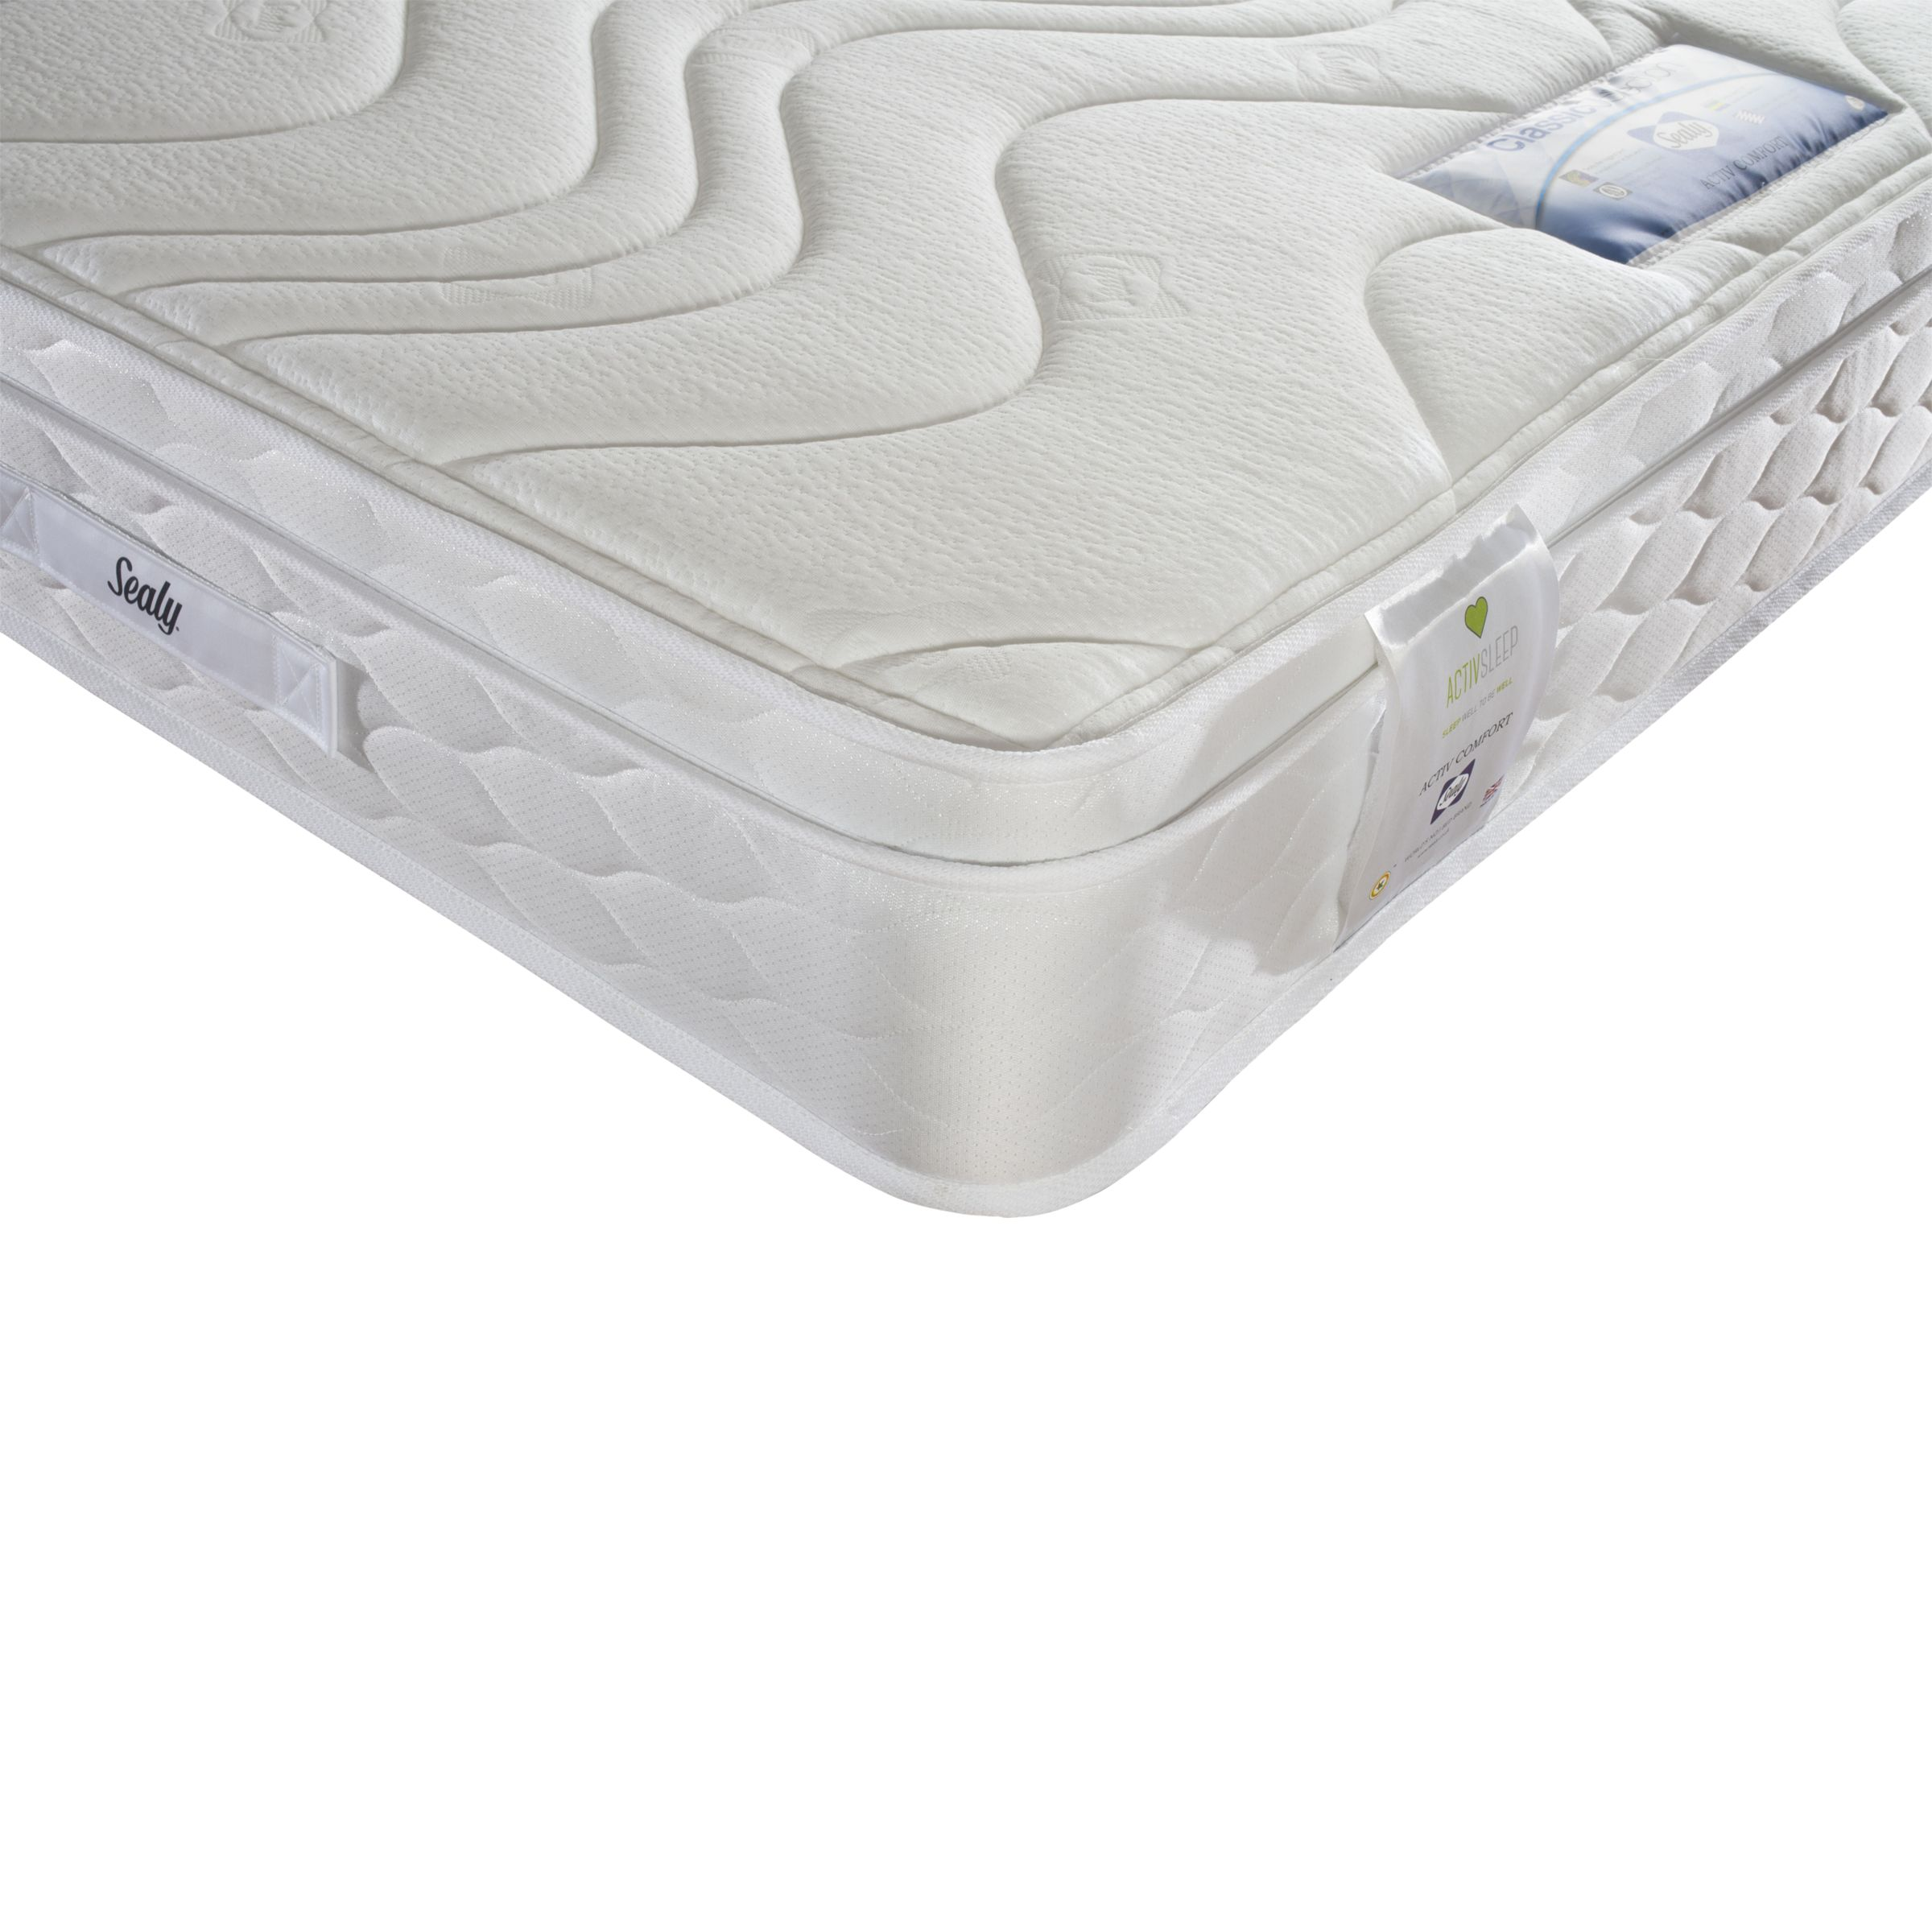 Sealy Sealy Activsleep Comfort Mattress, Medium, King Size